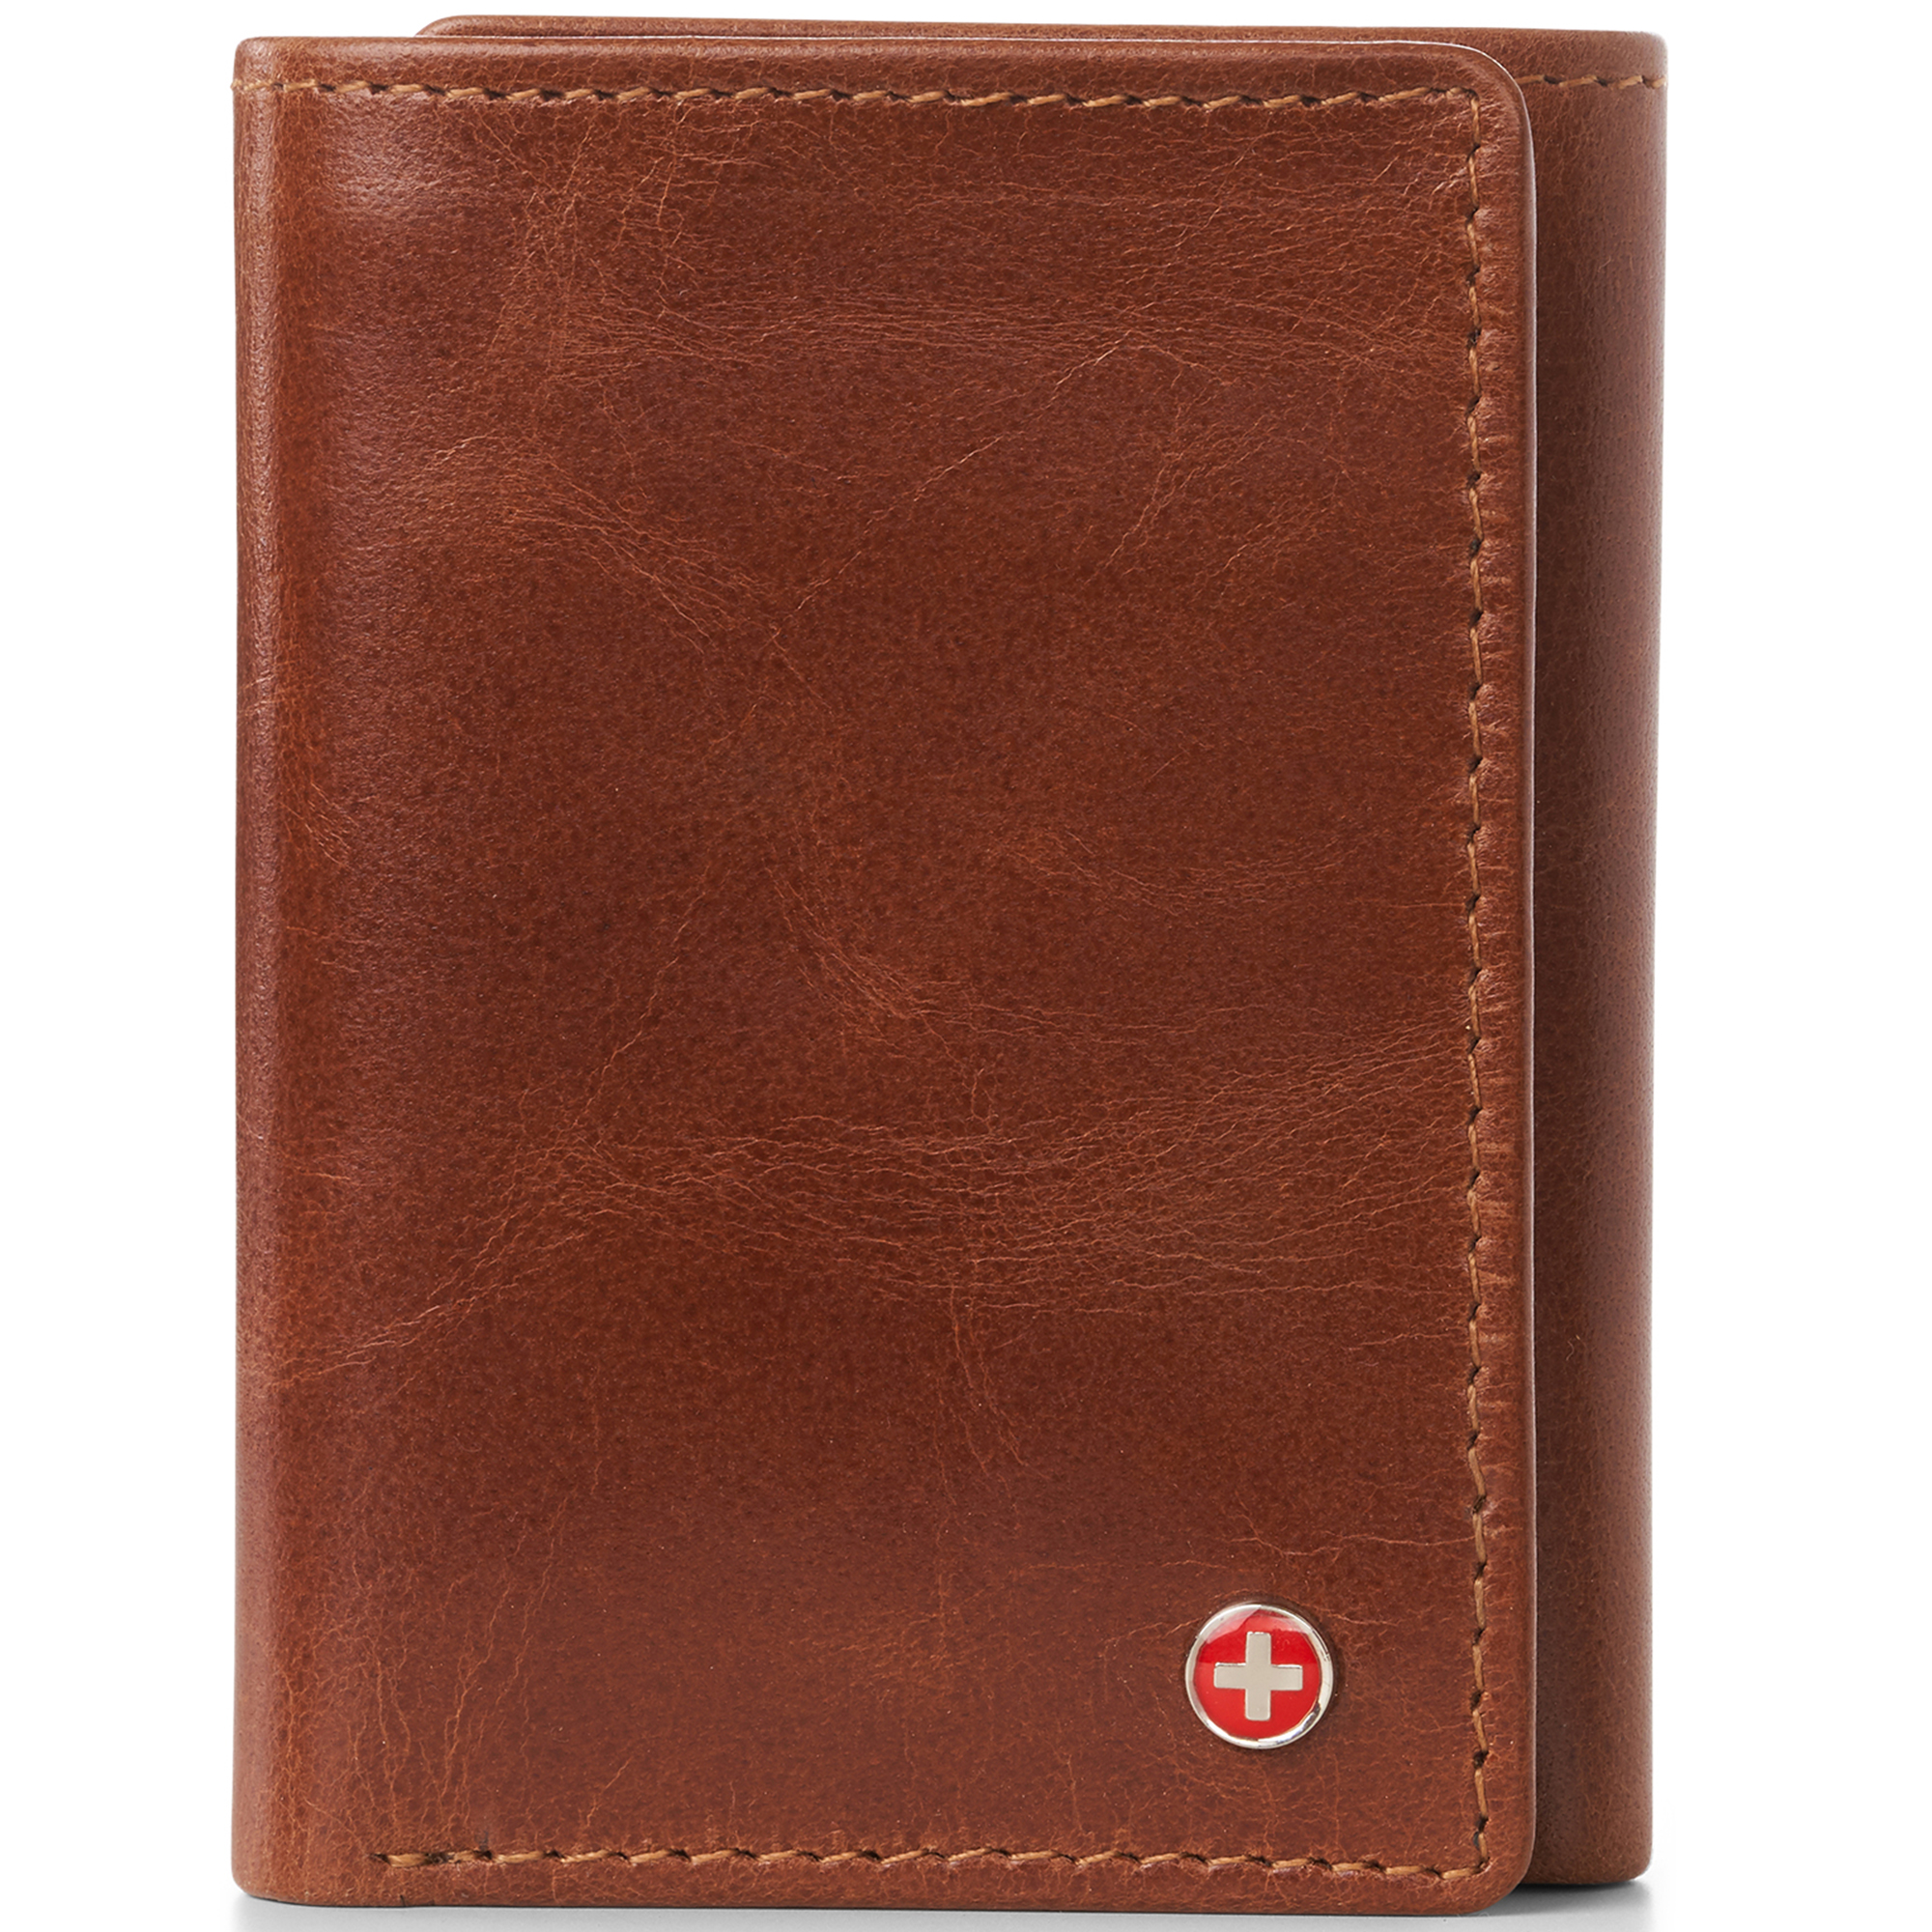 Alpine-Swiss-RFID-Mens-Wallet-Deluxe-Capacity-Trifold-With-Divided-Bill-Section thumbnail 24